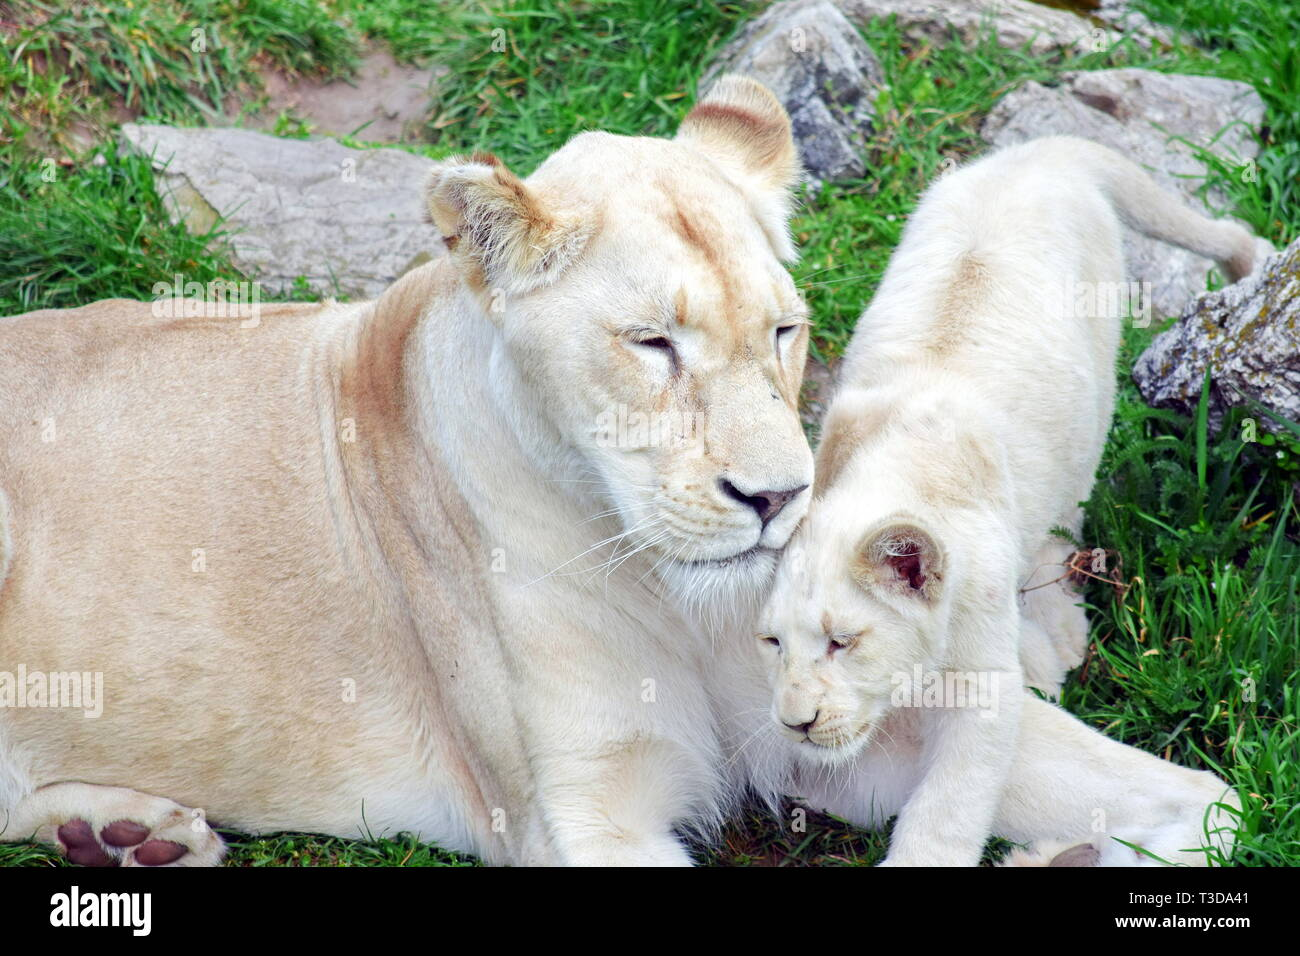 White Lioness Panthera Leo Krugeri Resting with Cub - Stock Image